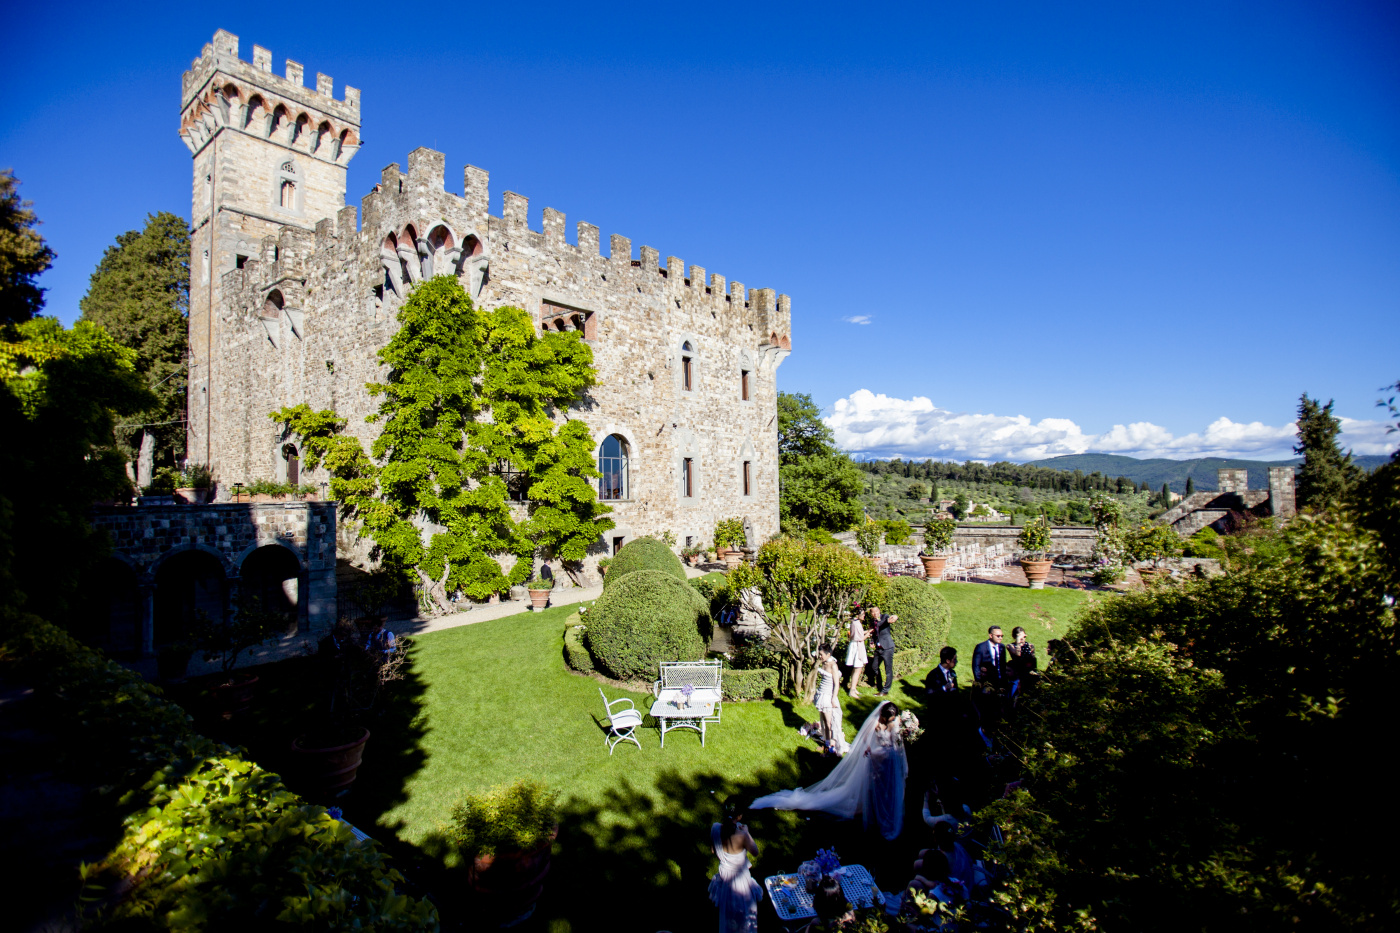 Castle with gardens for ceremony and cocktail reception